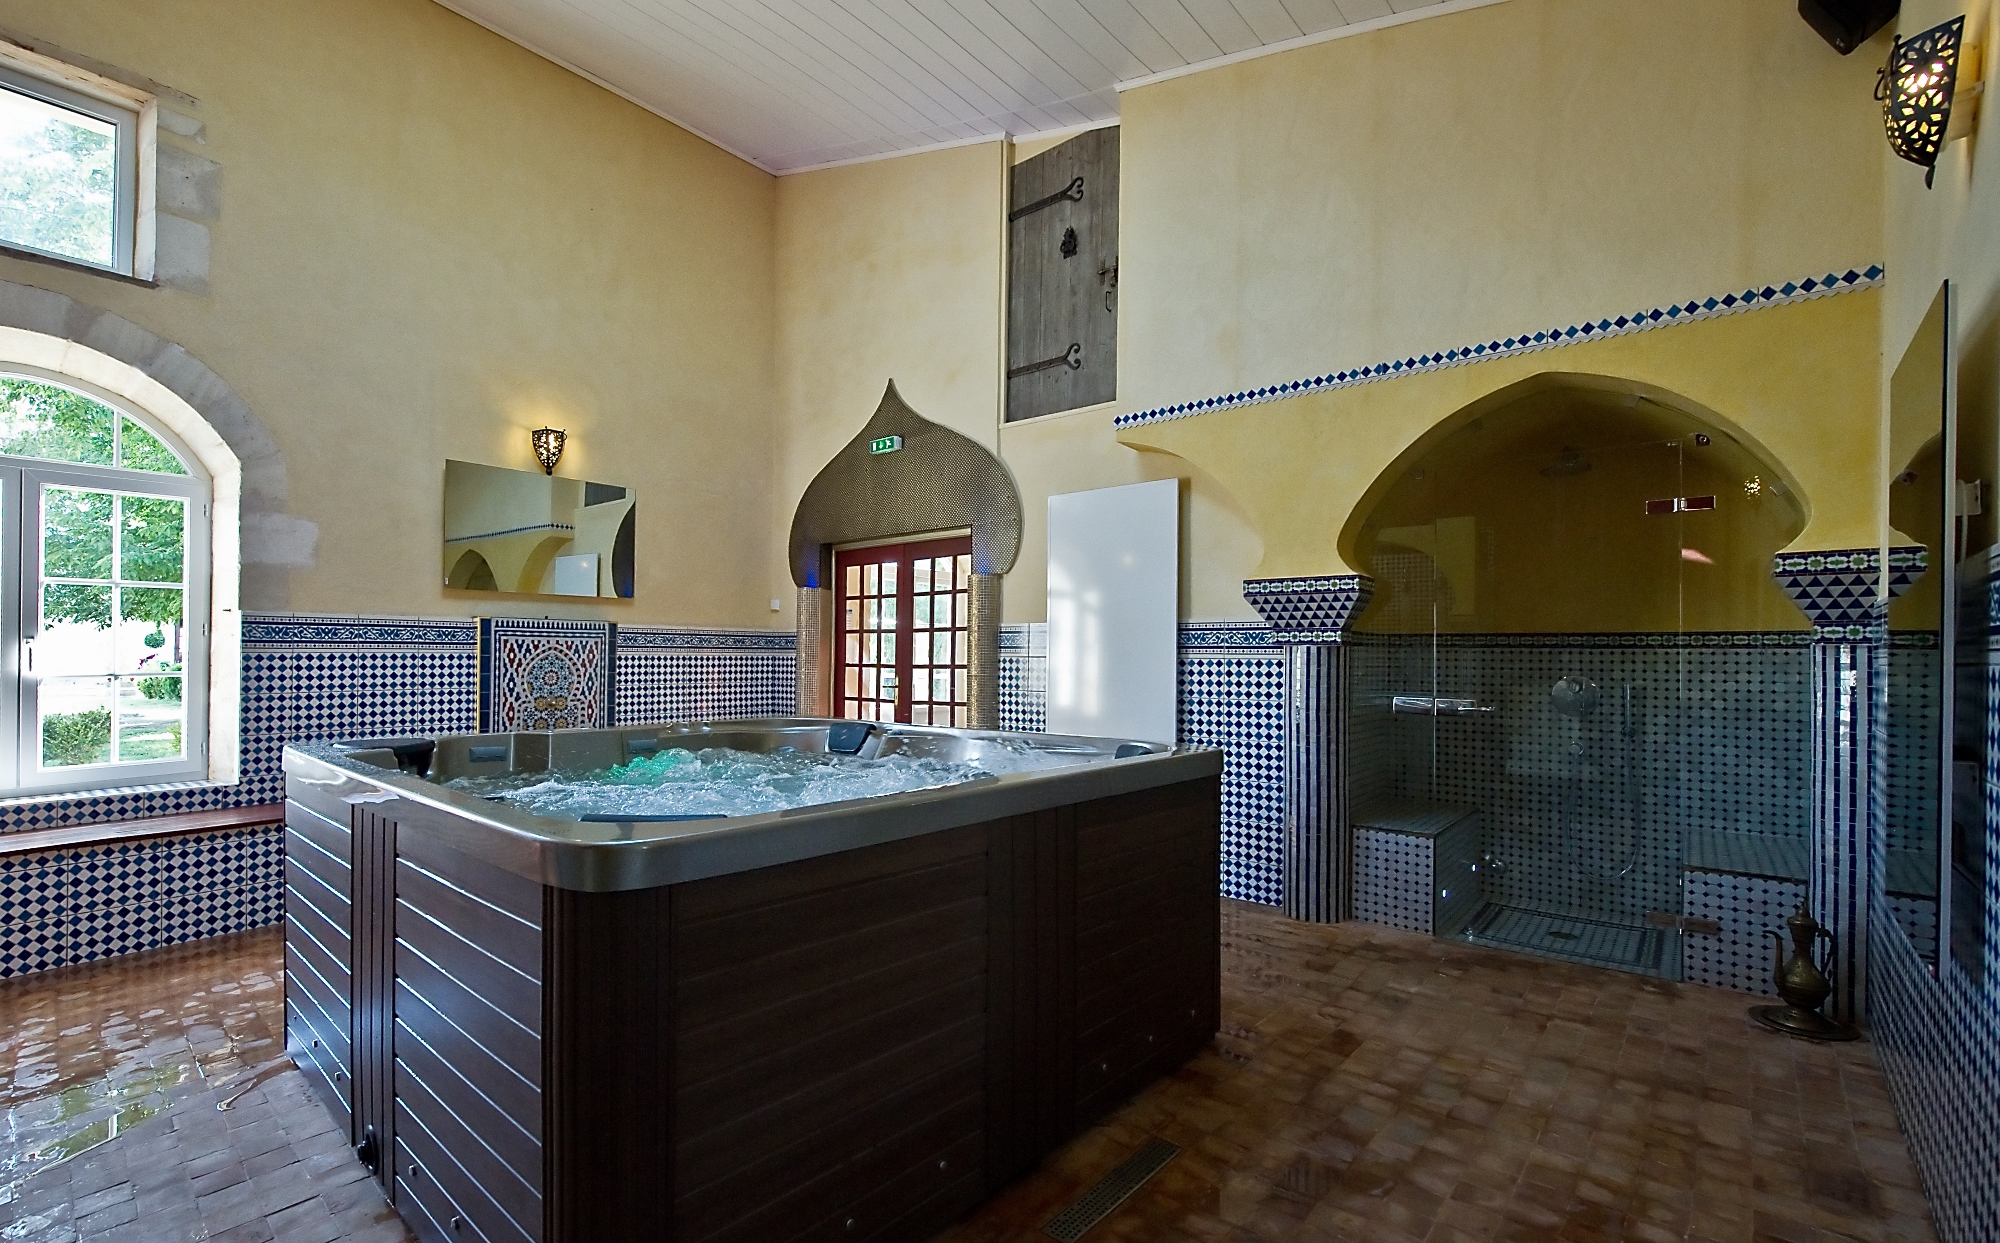 Small charming holiday rental in French chateau & vineyards - Bordeaux